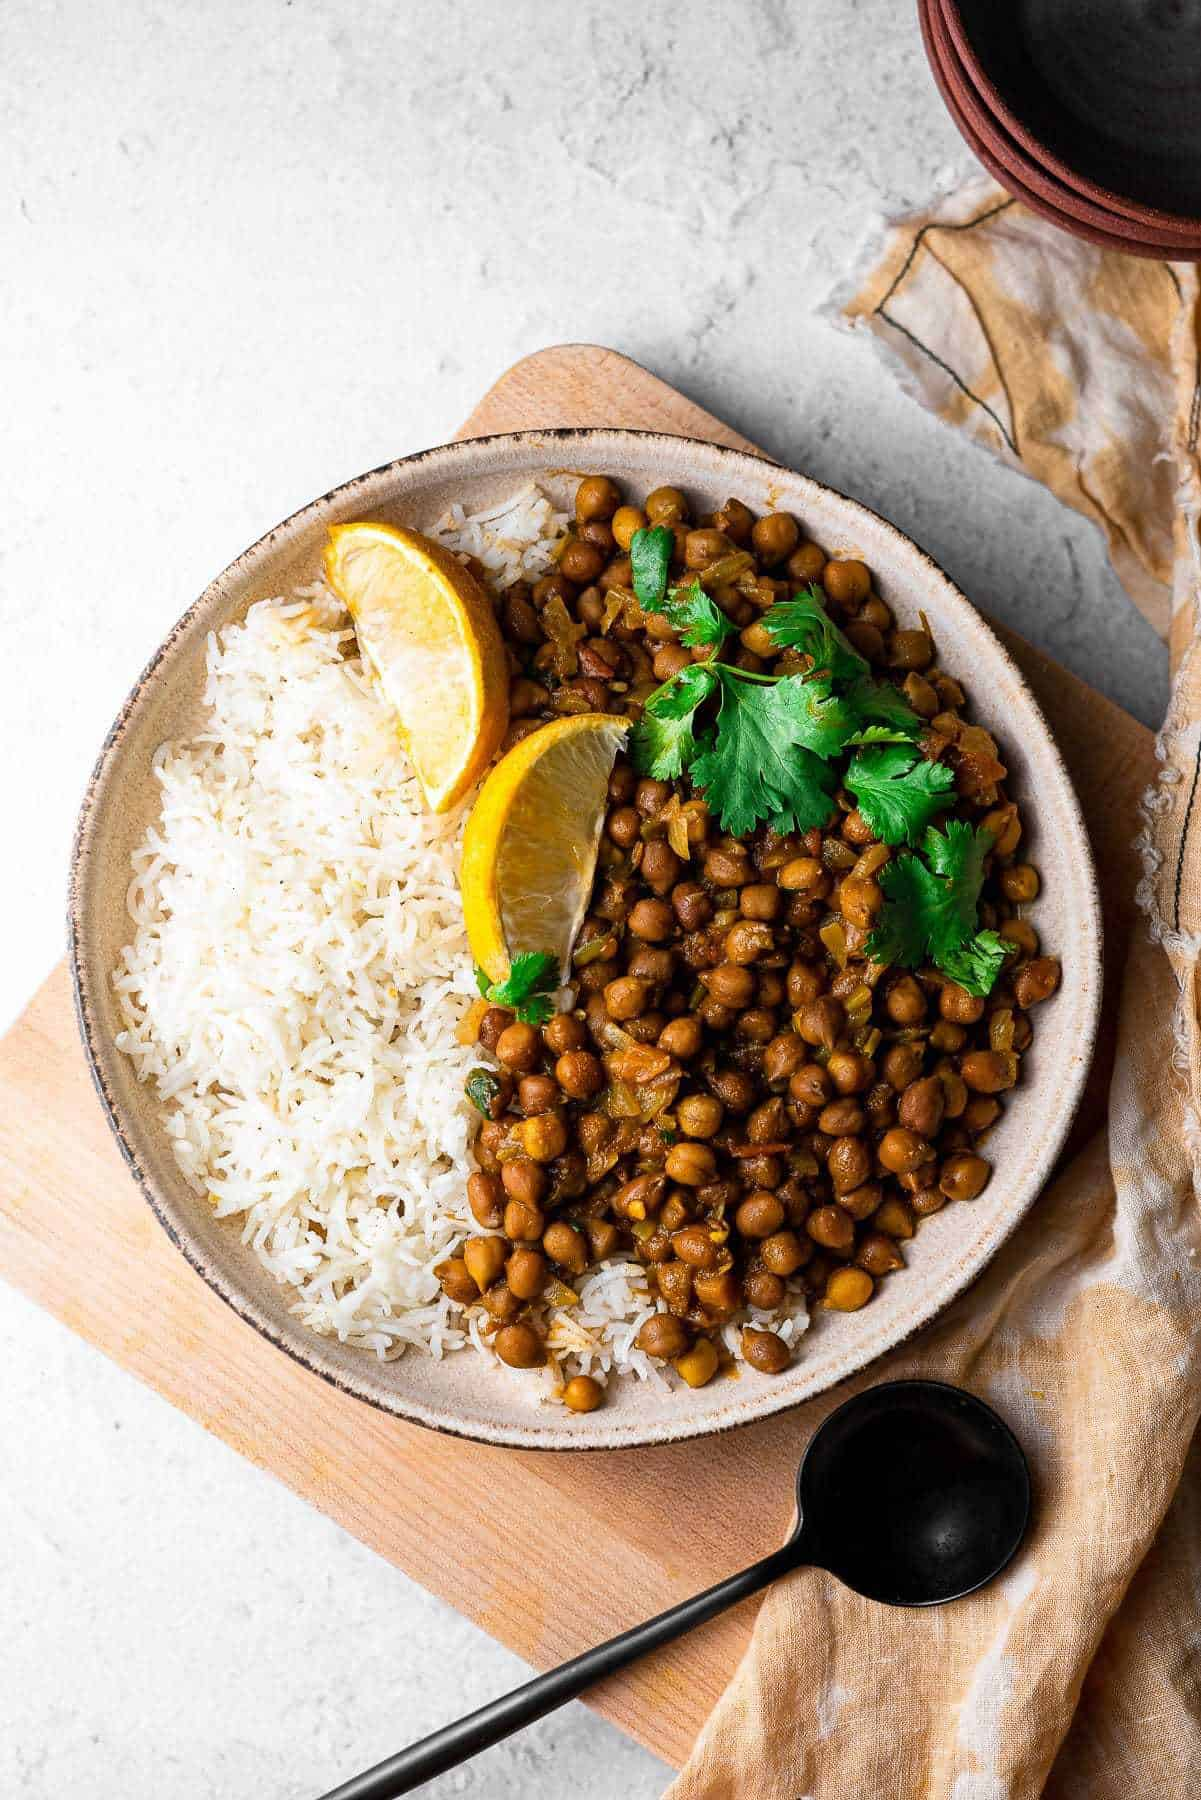 kala chana in a bowl with rice and lemon slices